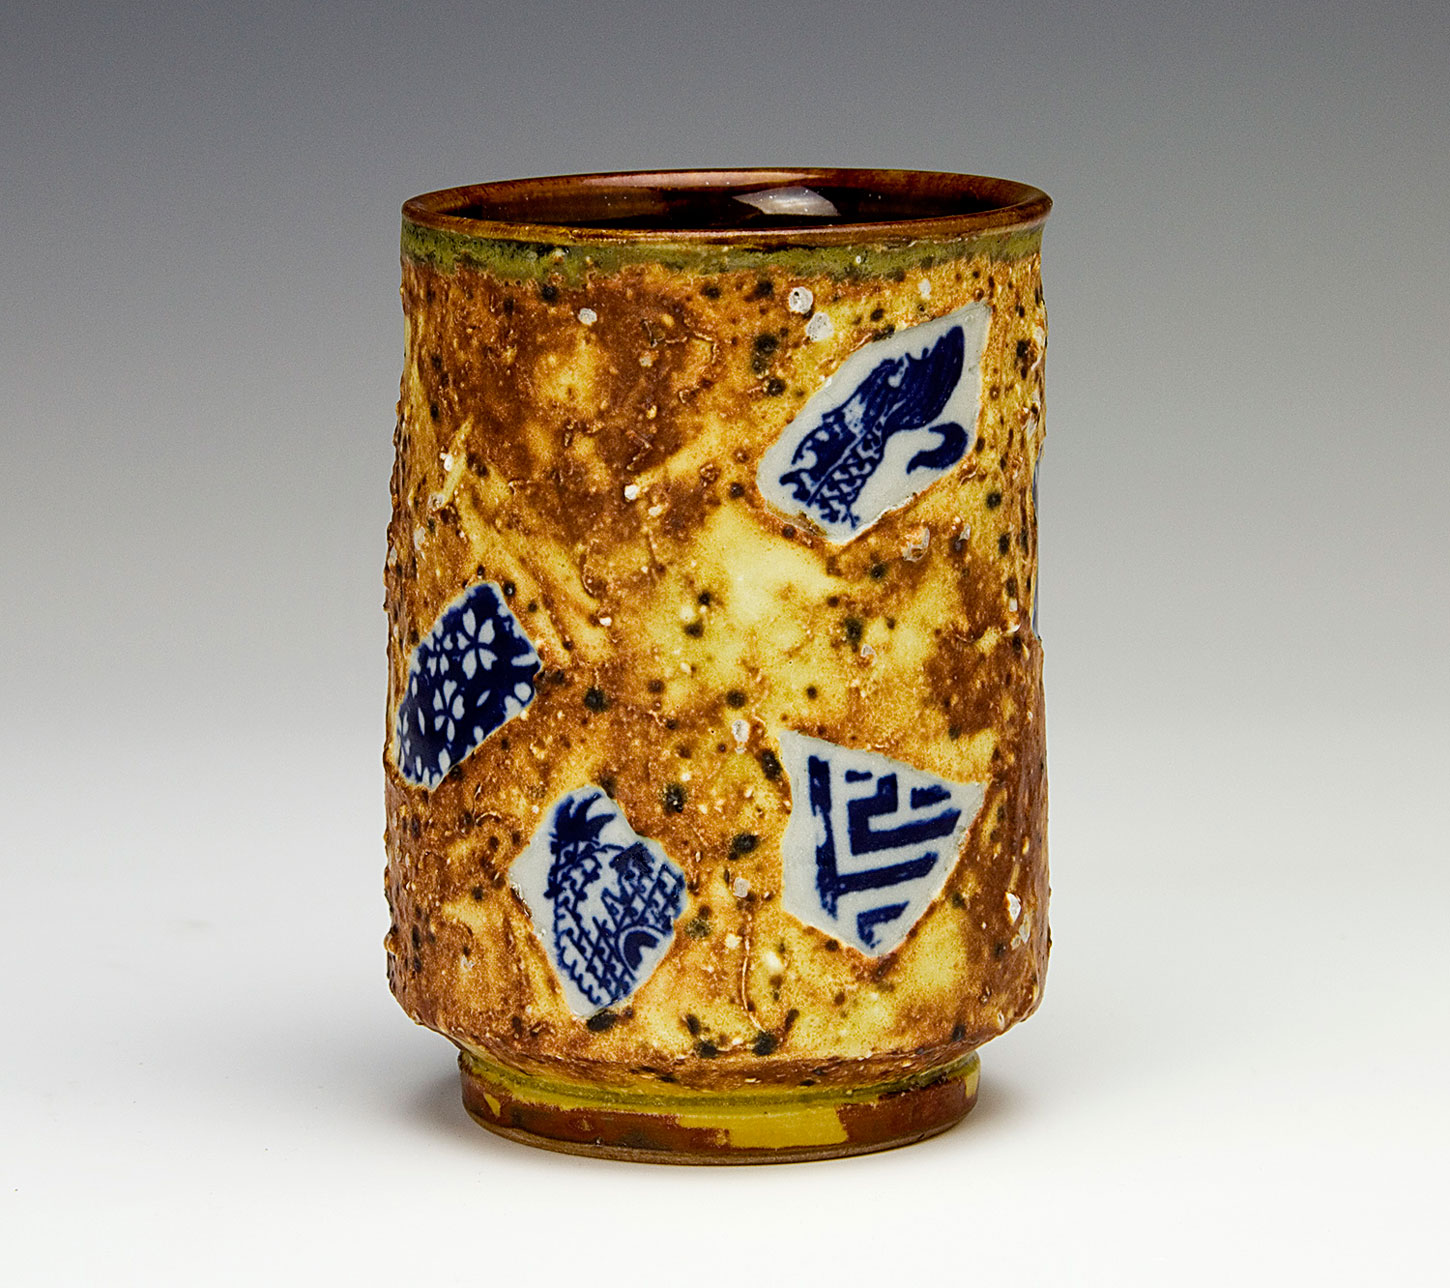 Ceramic-Shard-Art-Cup-Bruce-Gholson-Bulldog-Pottery.jpg